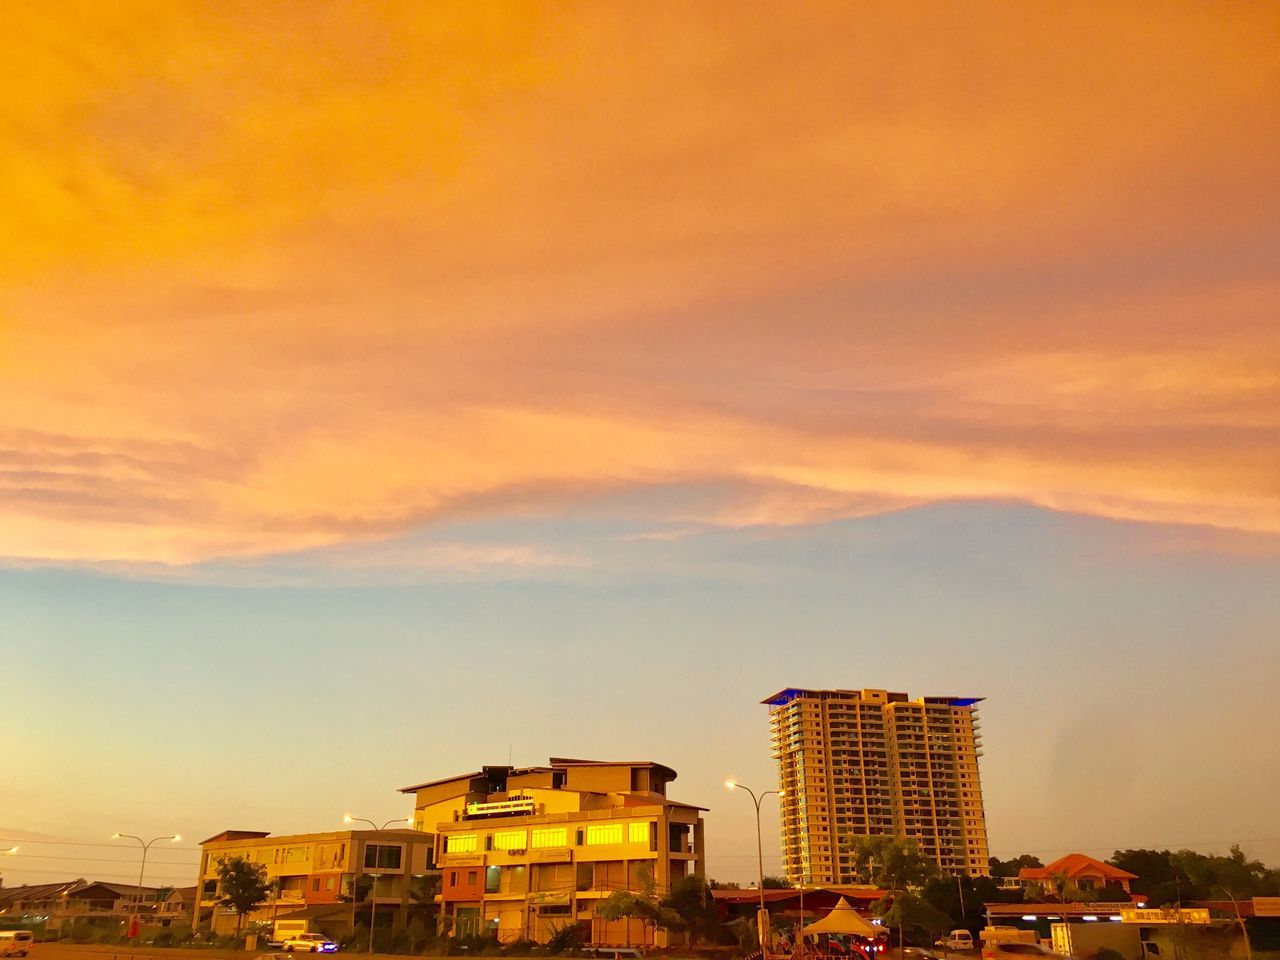 architecture, building exterior, built structure, sky, sunset, no people, cloud - sky, city, outdoors, cityscape, illuminated, nature, day